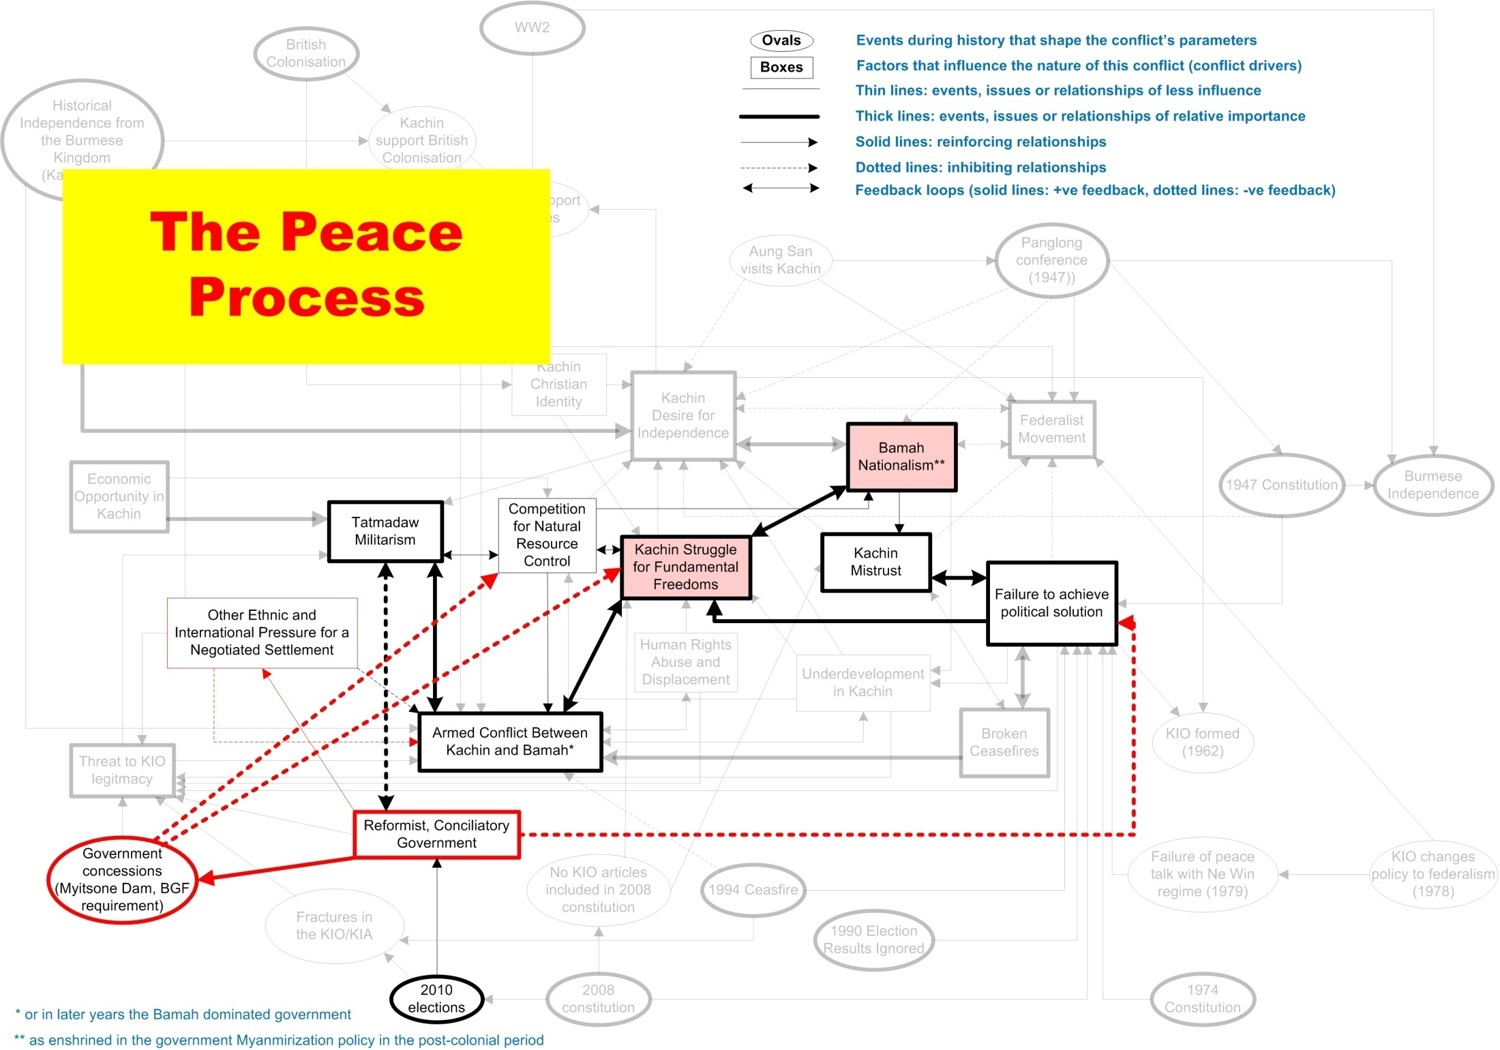 System conflict analysis in Kachin State Imagen15.jpg